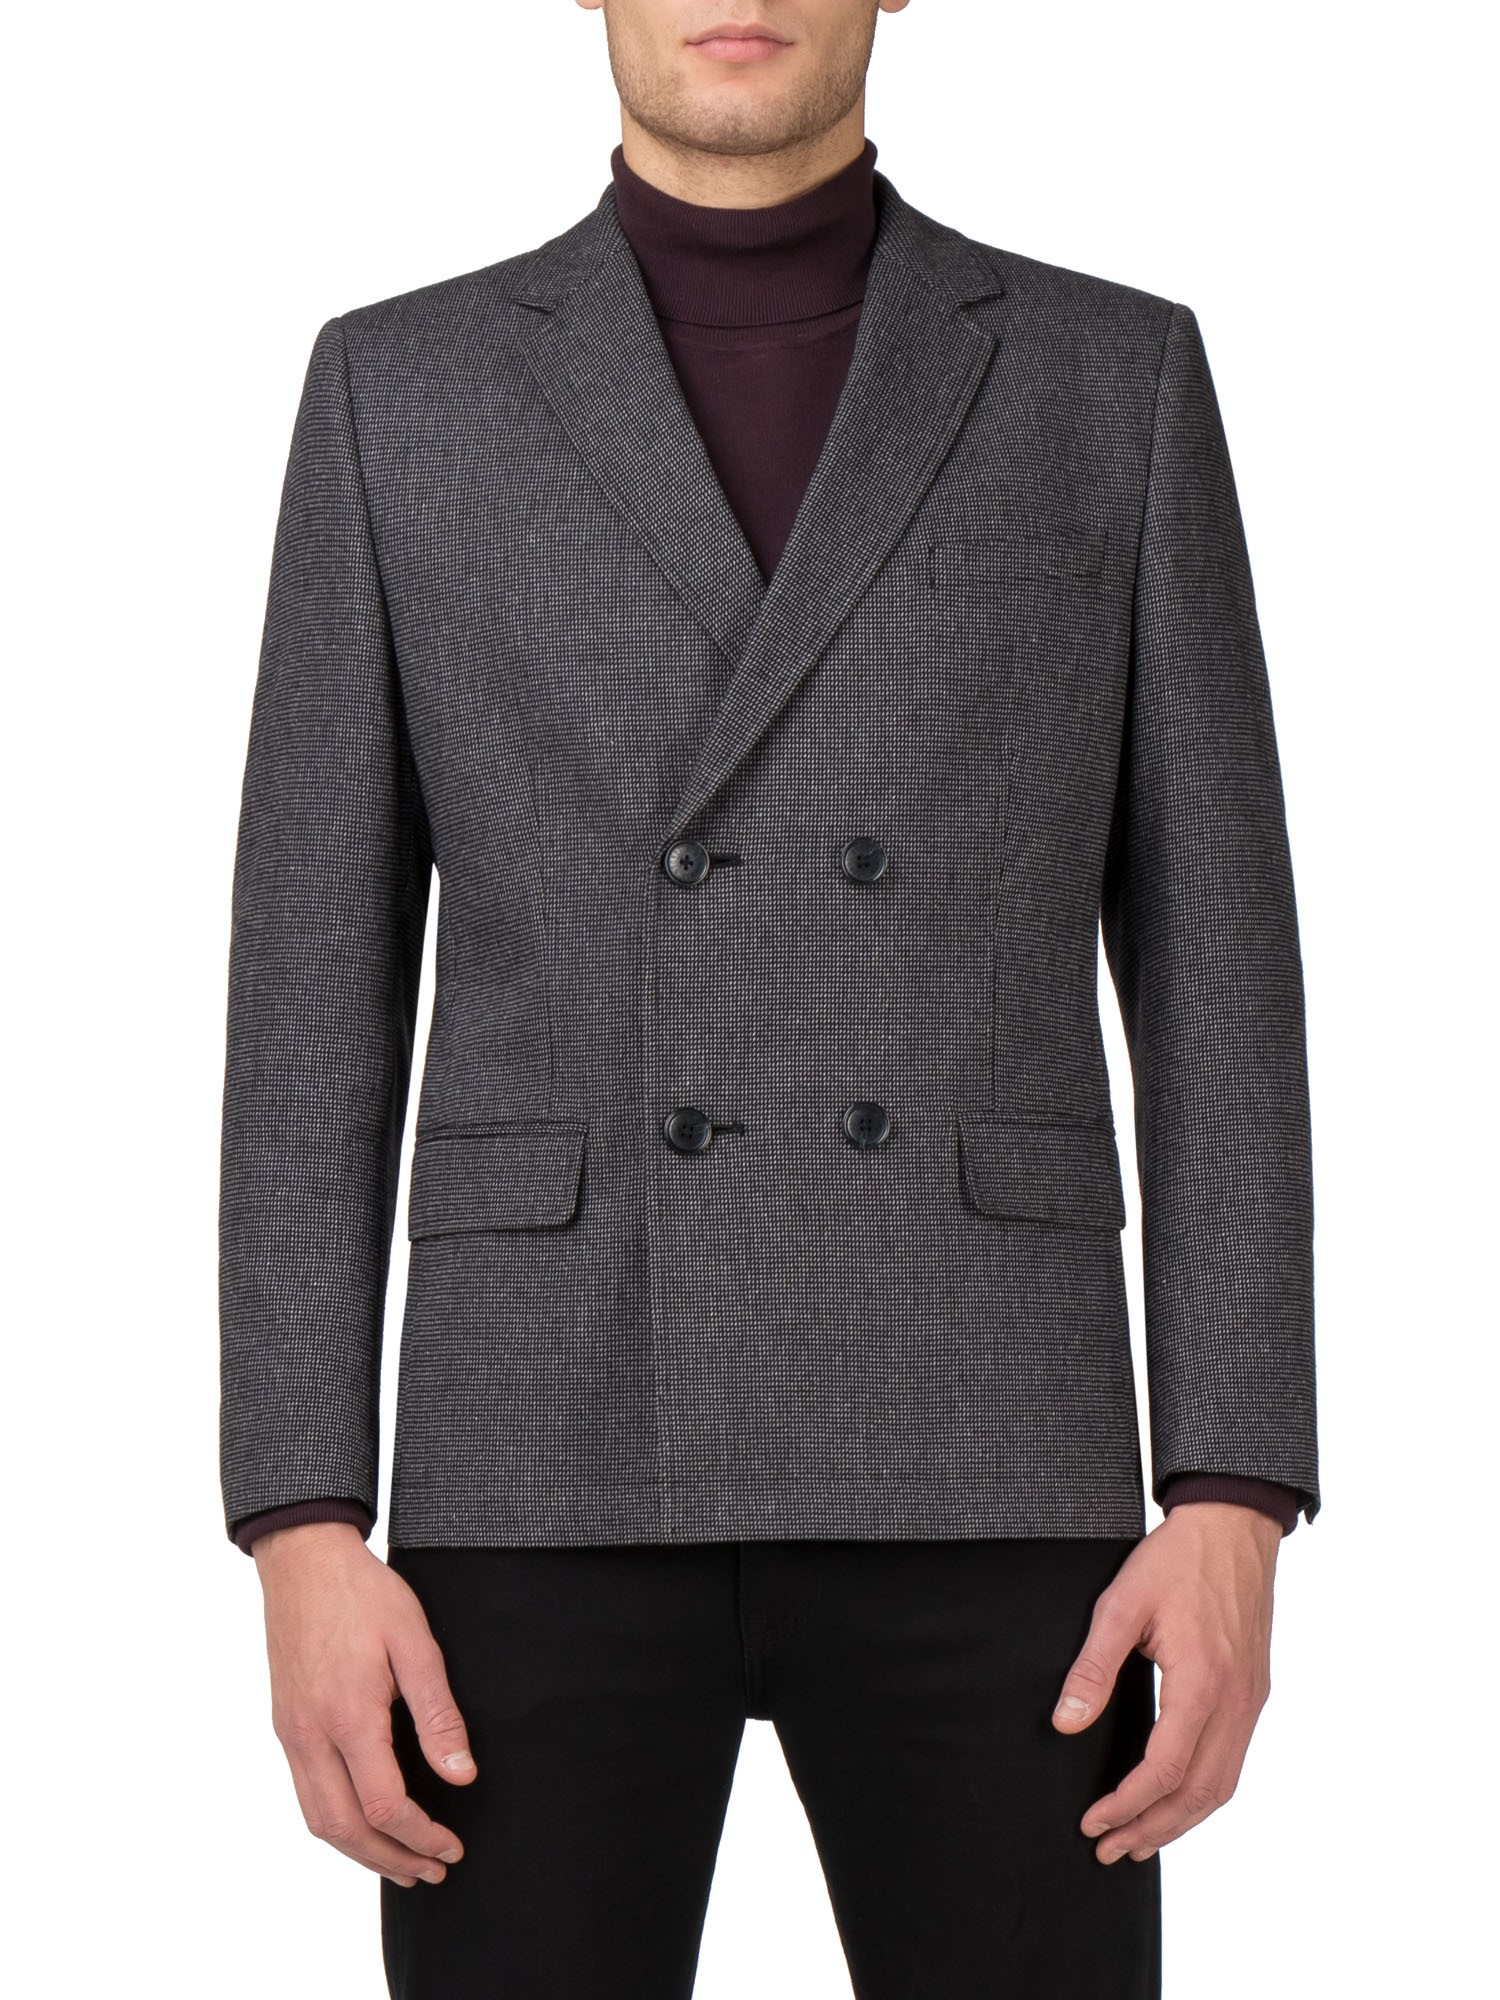 Ben Sherman Black Micro Check Double Breasted Jacket Kings Fit (Tailored Fit)